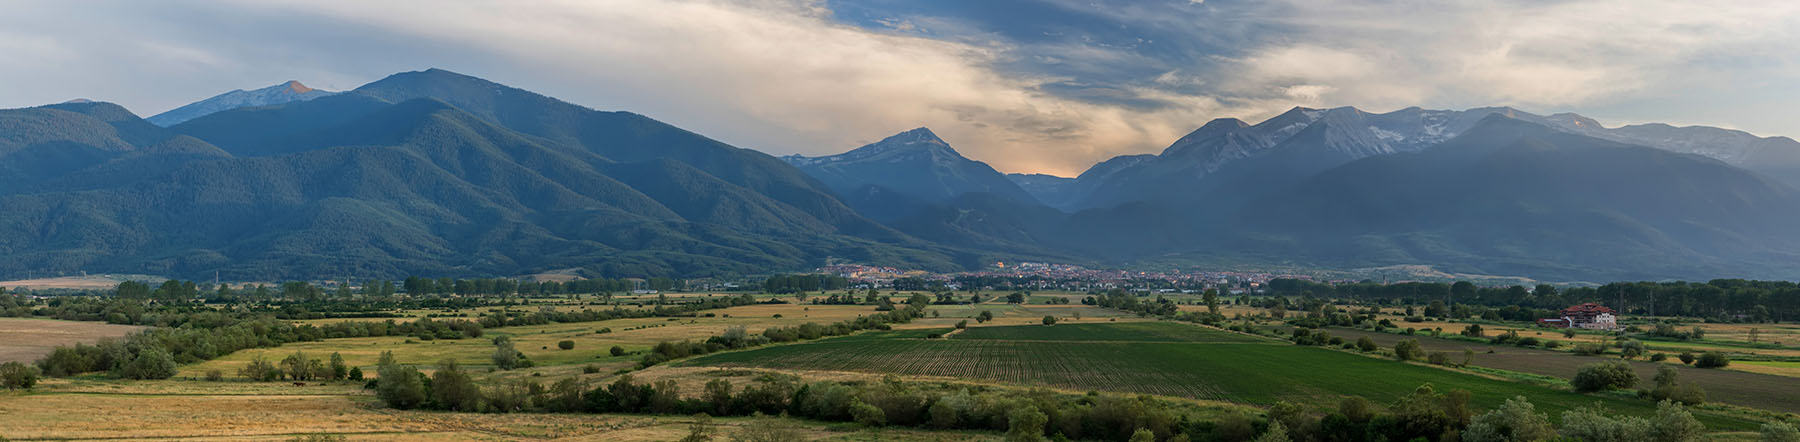 The view towards Bansko and Pirin mountains from the Kameno area near Banya village, Bulgaria. Hotel Seven Seasons can be seen right on the photo